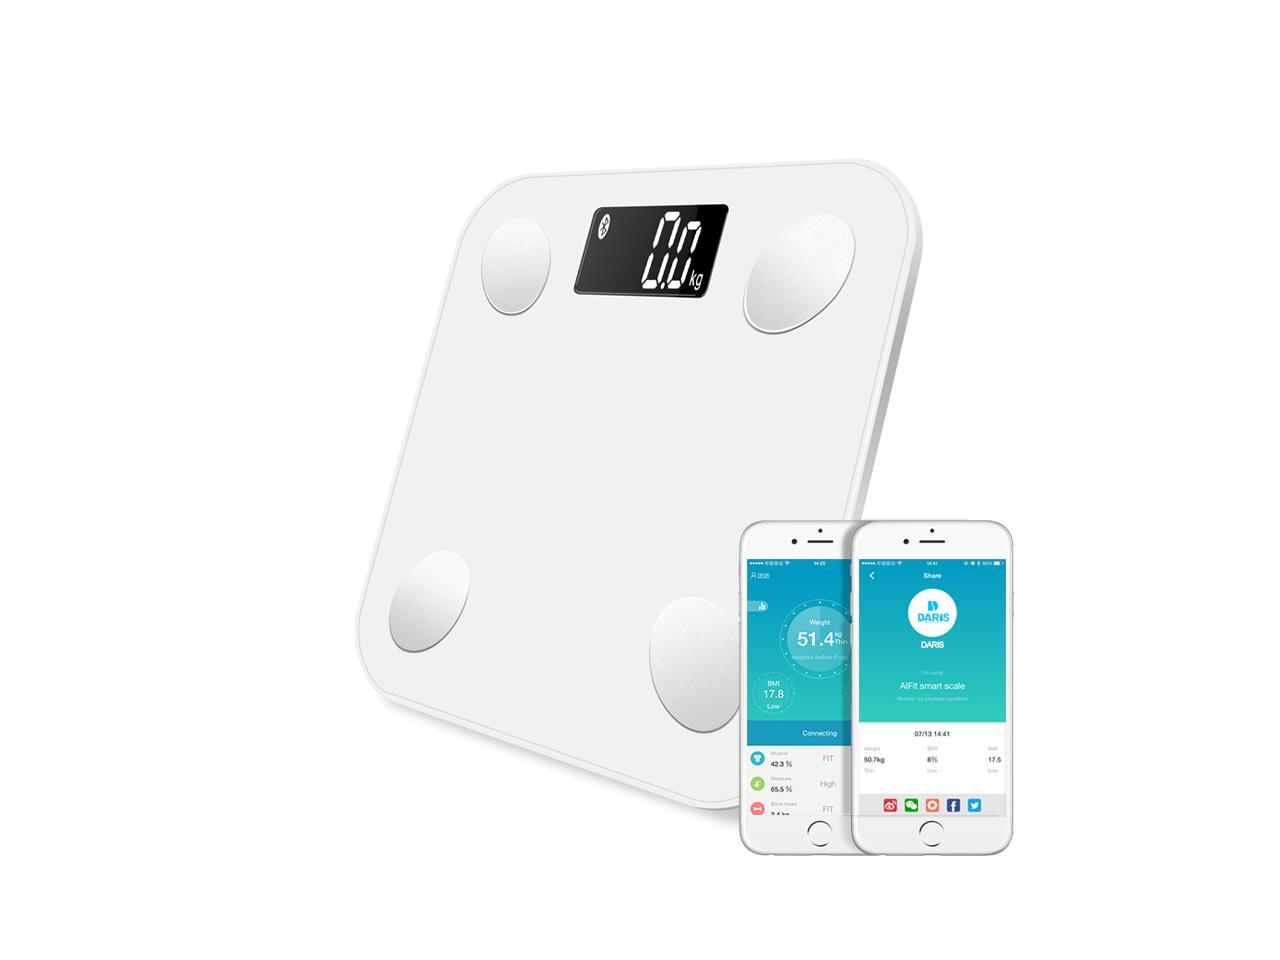 EC2WORLD Body Fat Digital Intelligent Weight Scales (More Options)